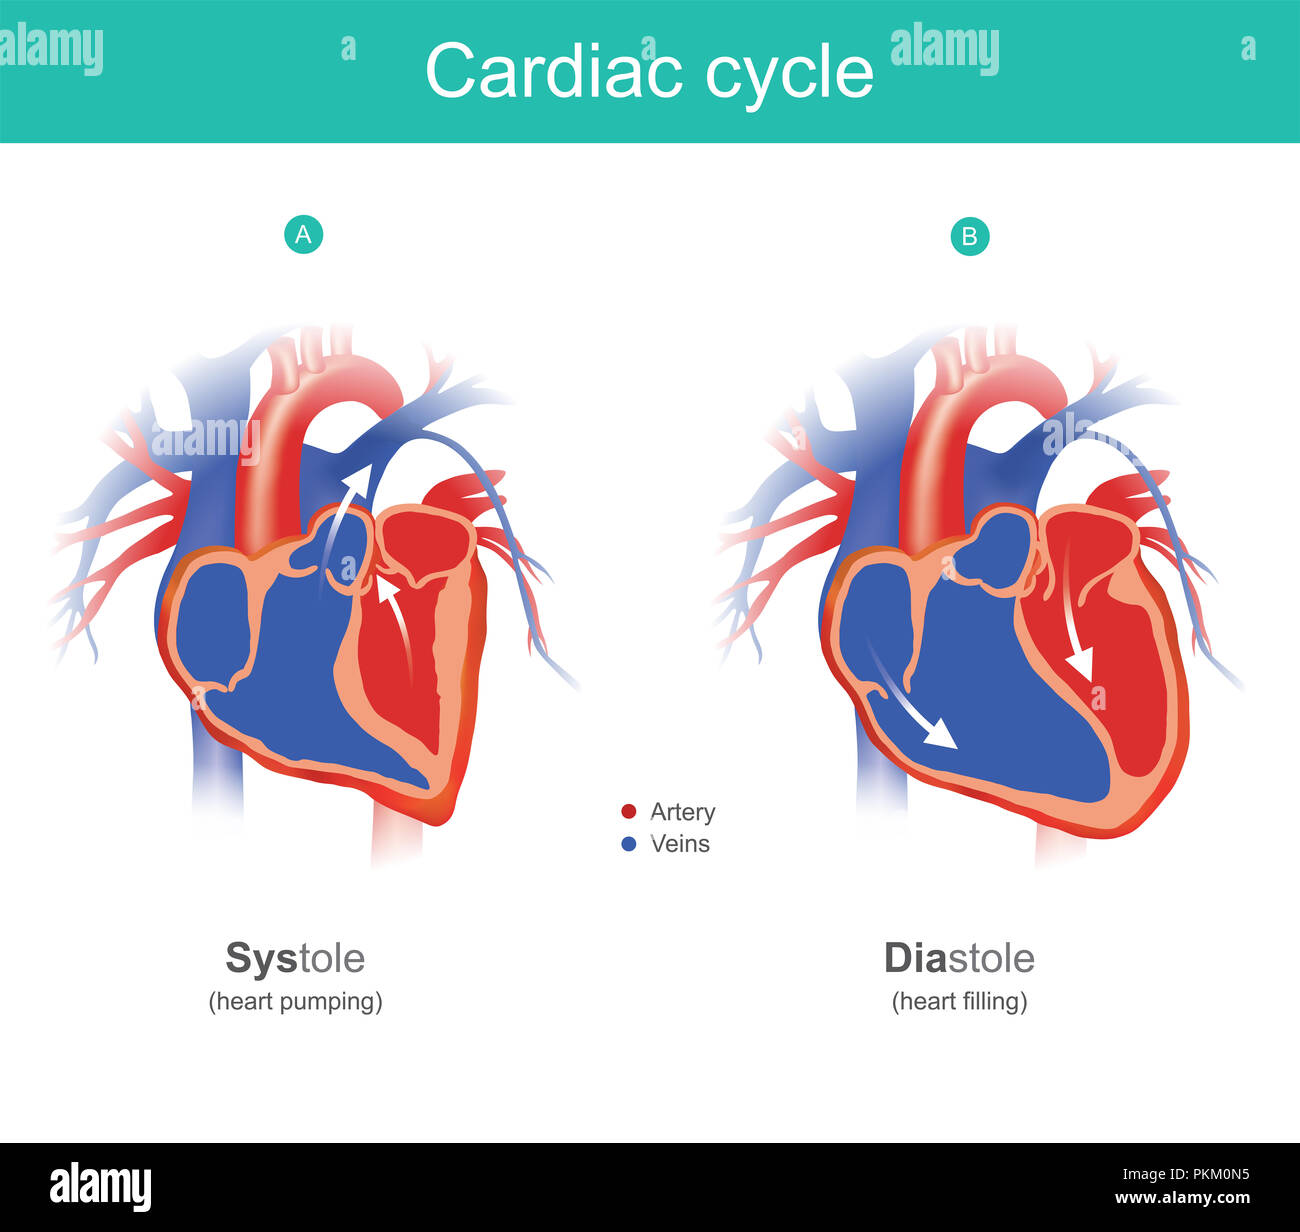 The heart is the organ of the human body that pumps blood to the body. Anatomy infographic. - Stock Image